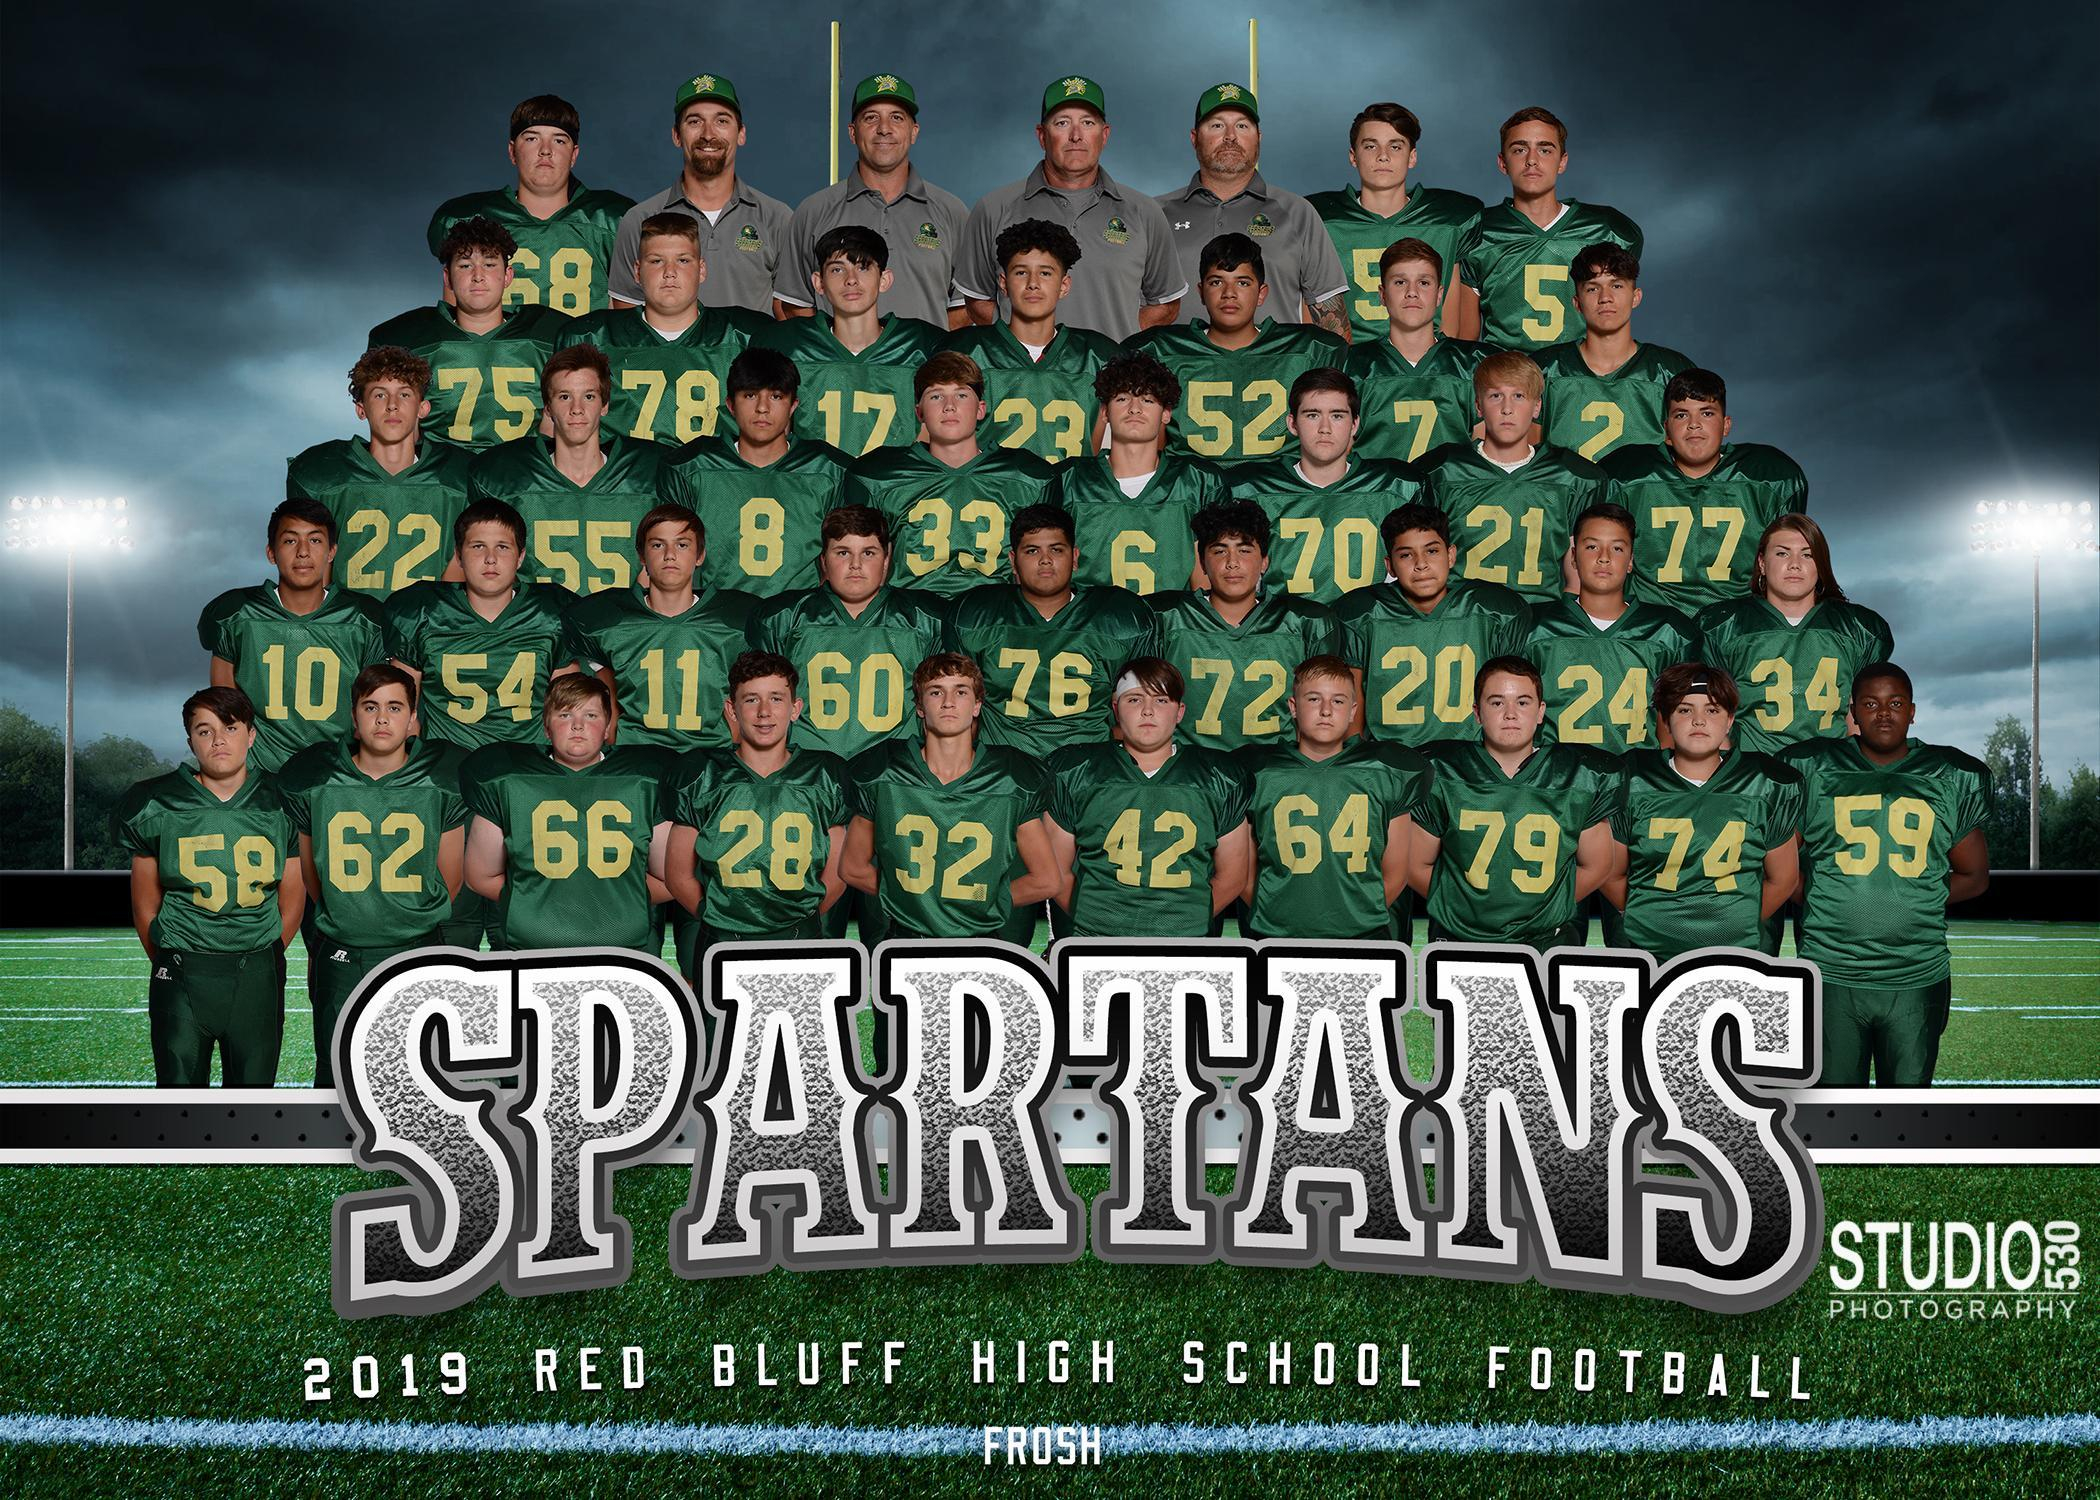 Red Bluff High School – Football With Regard To Red Bluff High School Schedule